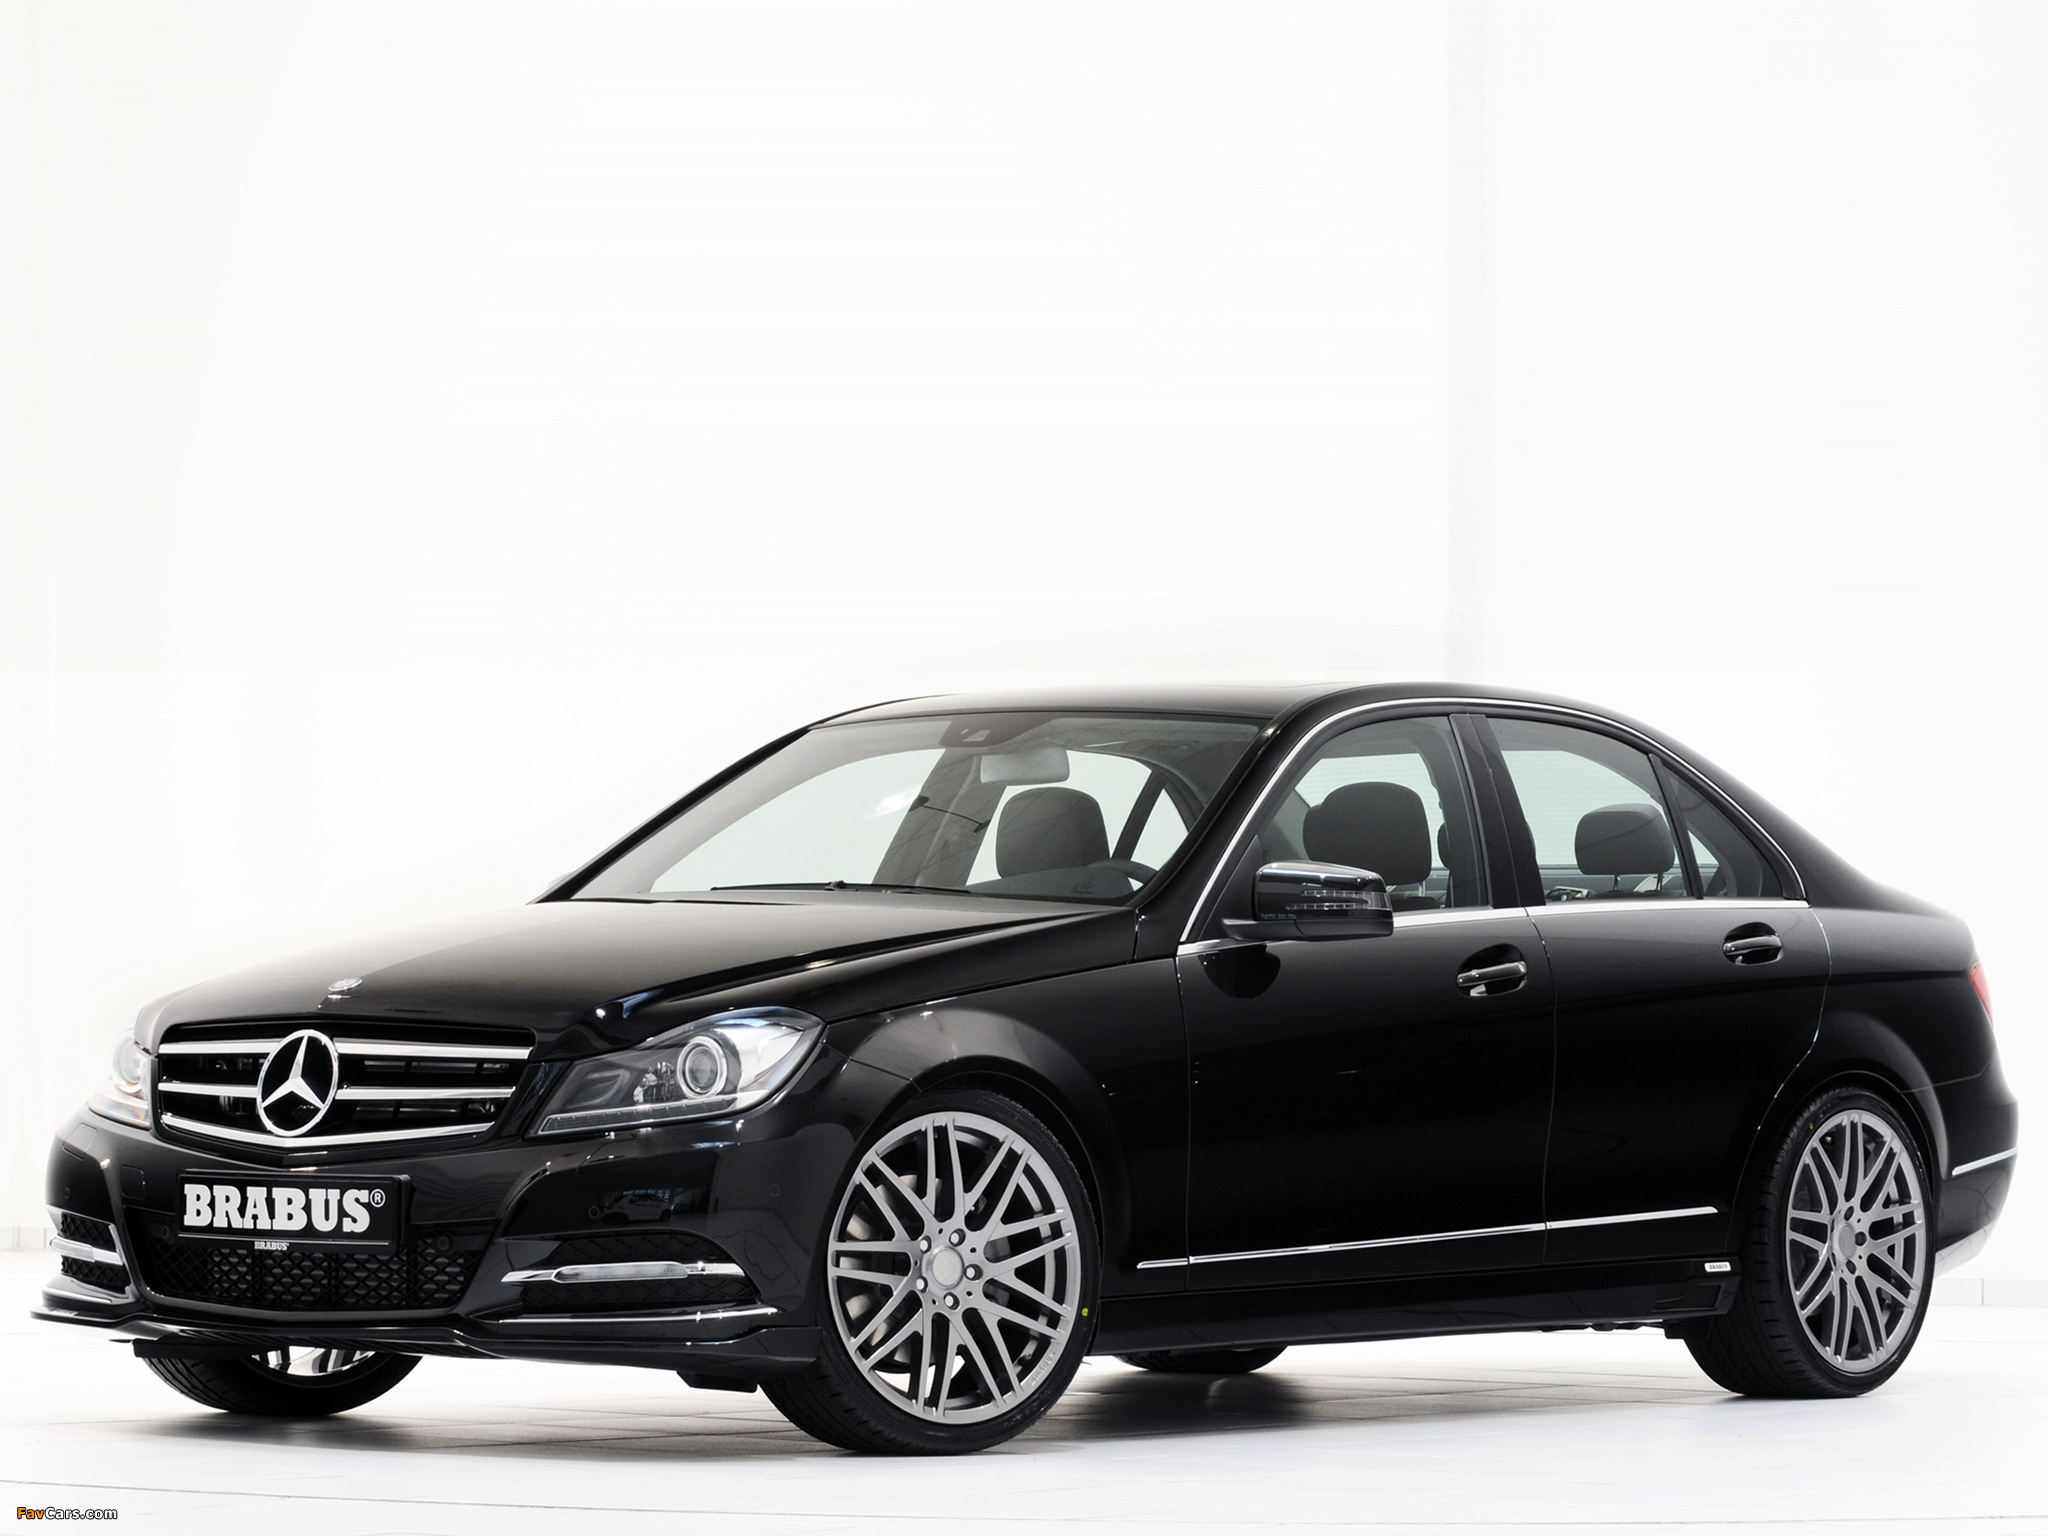 brabus mercedes benz c klasse w204 2011 wallpapers 2048x1536. Black Bedroom Furniture Sets. Home Design Ideas